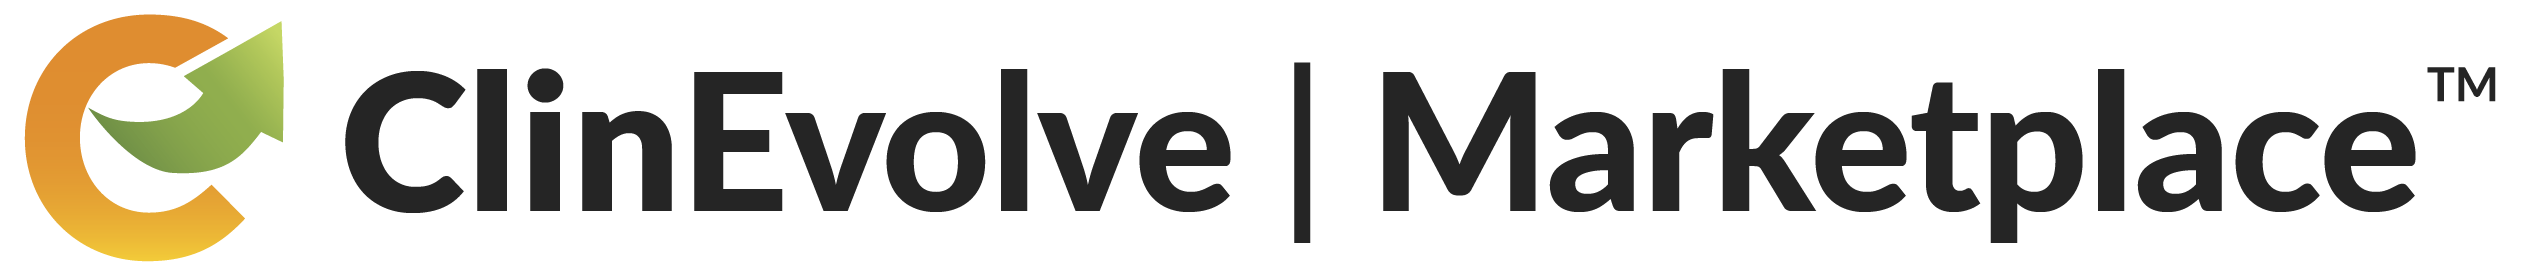 ClinEvolve Marketplace, pre-built content and add-on applications